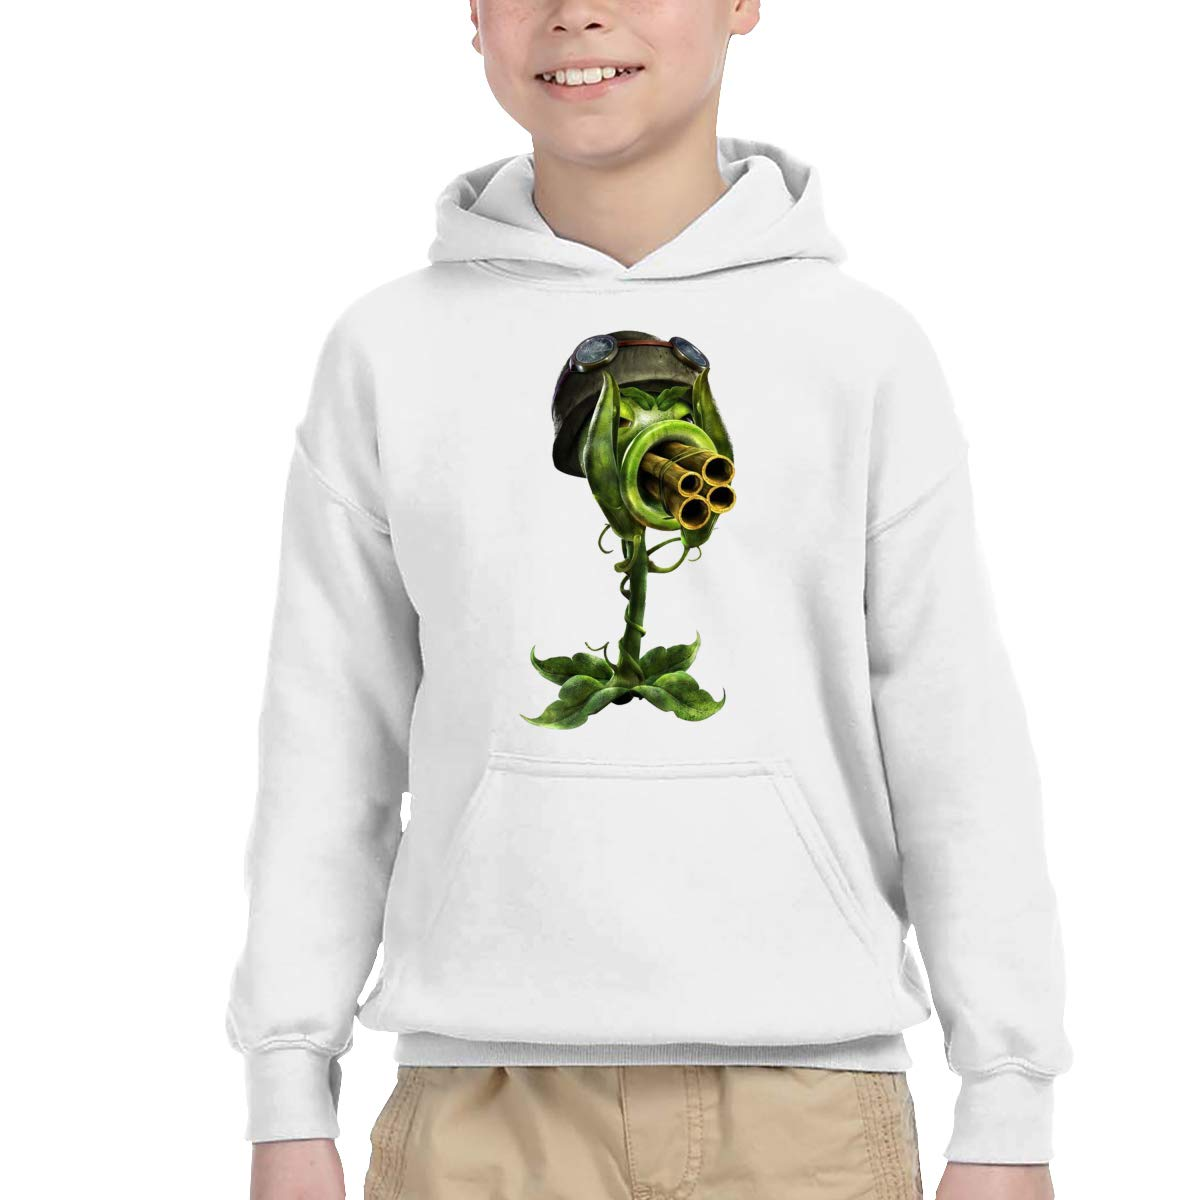 Zombies Childrens Hooded Pocket Sweater Unisex for Boys//Girls//Teen//Kids Black CiXianFuLu Halloween Plants Vs